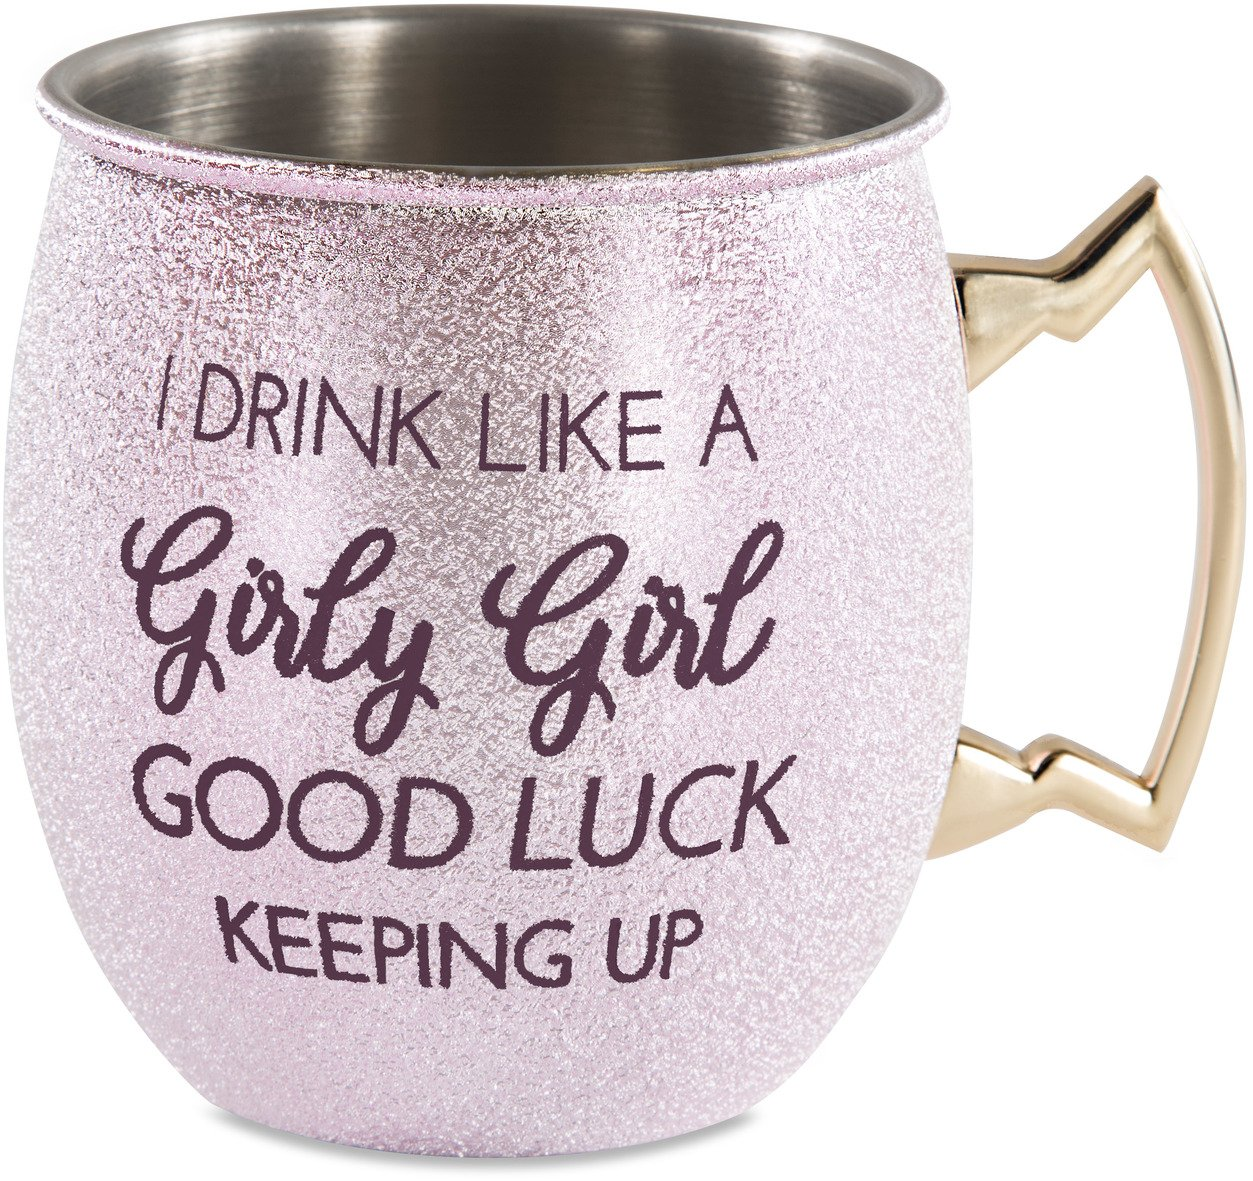 Pavilion - I Drink Like A Girly Girl Good Luck Keeping Up - Pink 20 oz Stainless Steel Moscow Mule